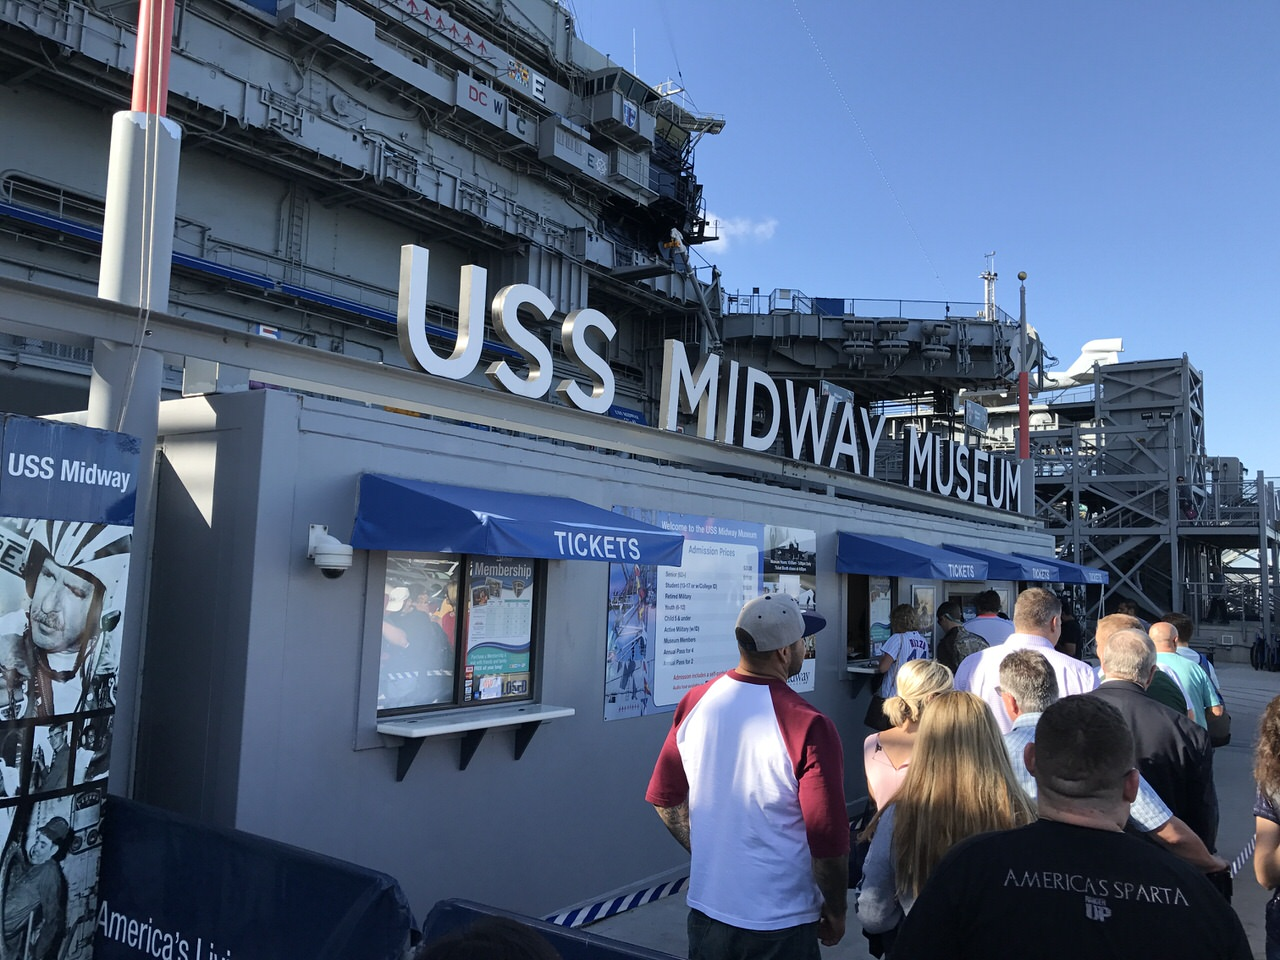 Uss midway museum 0550